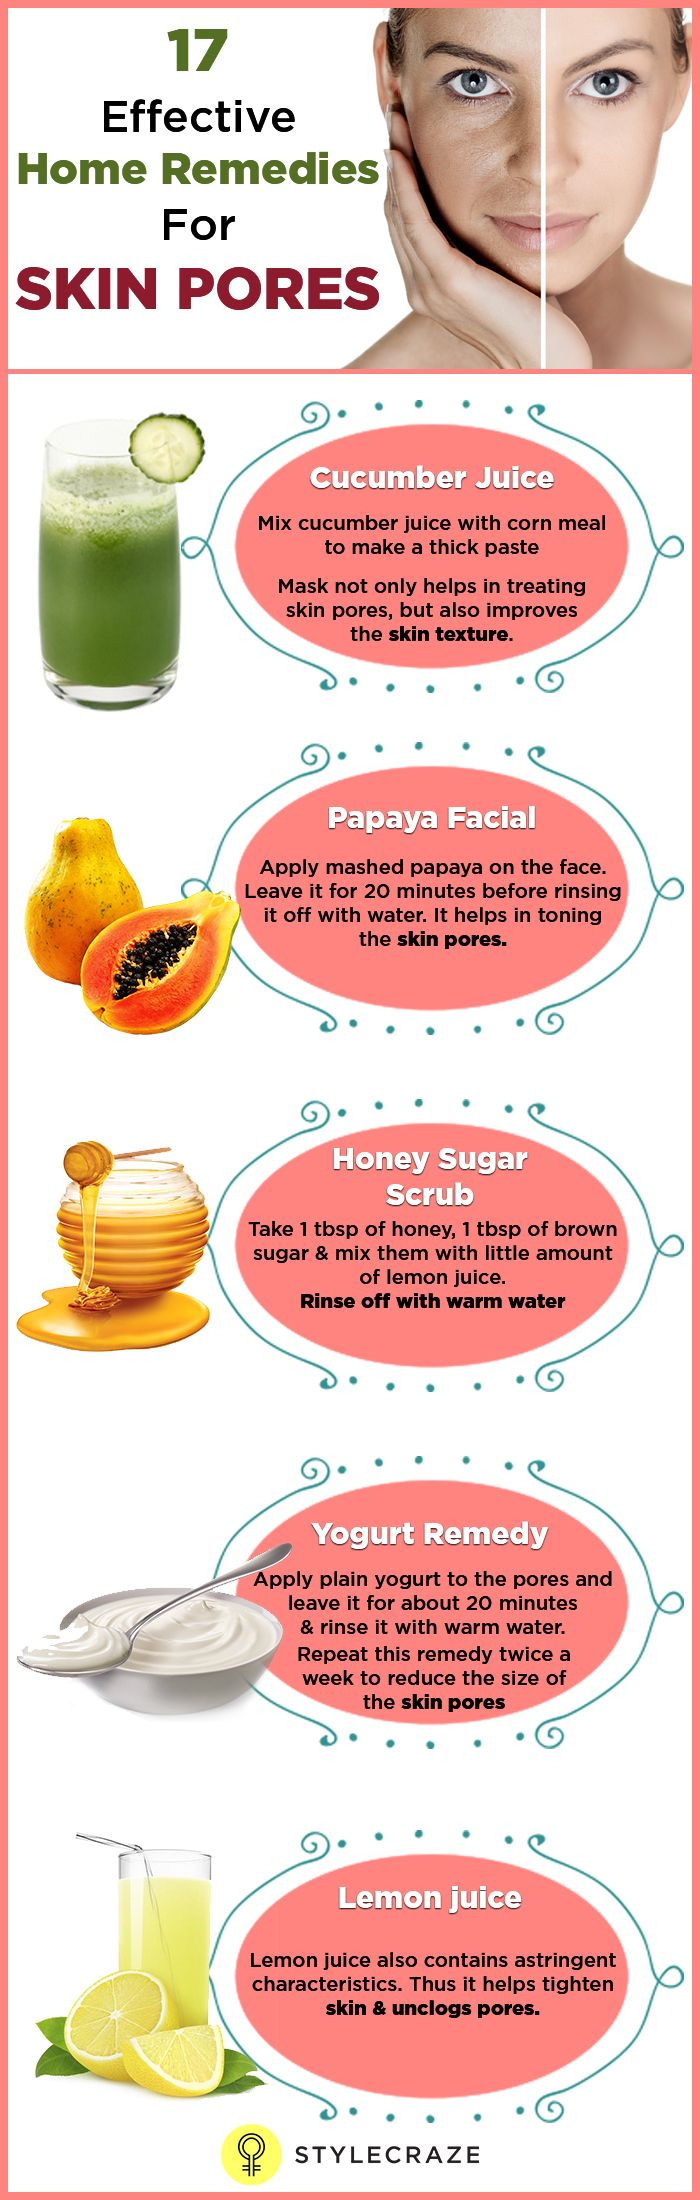 17 Natural home remedies to help cure skin pores.